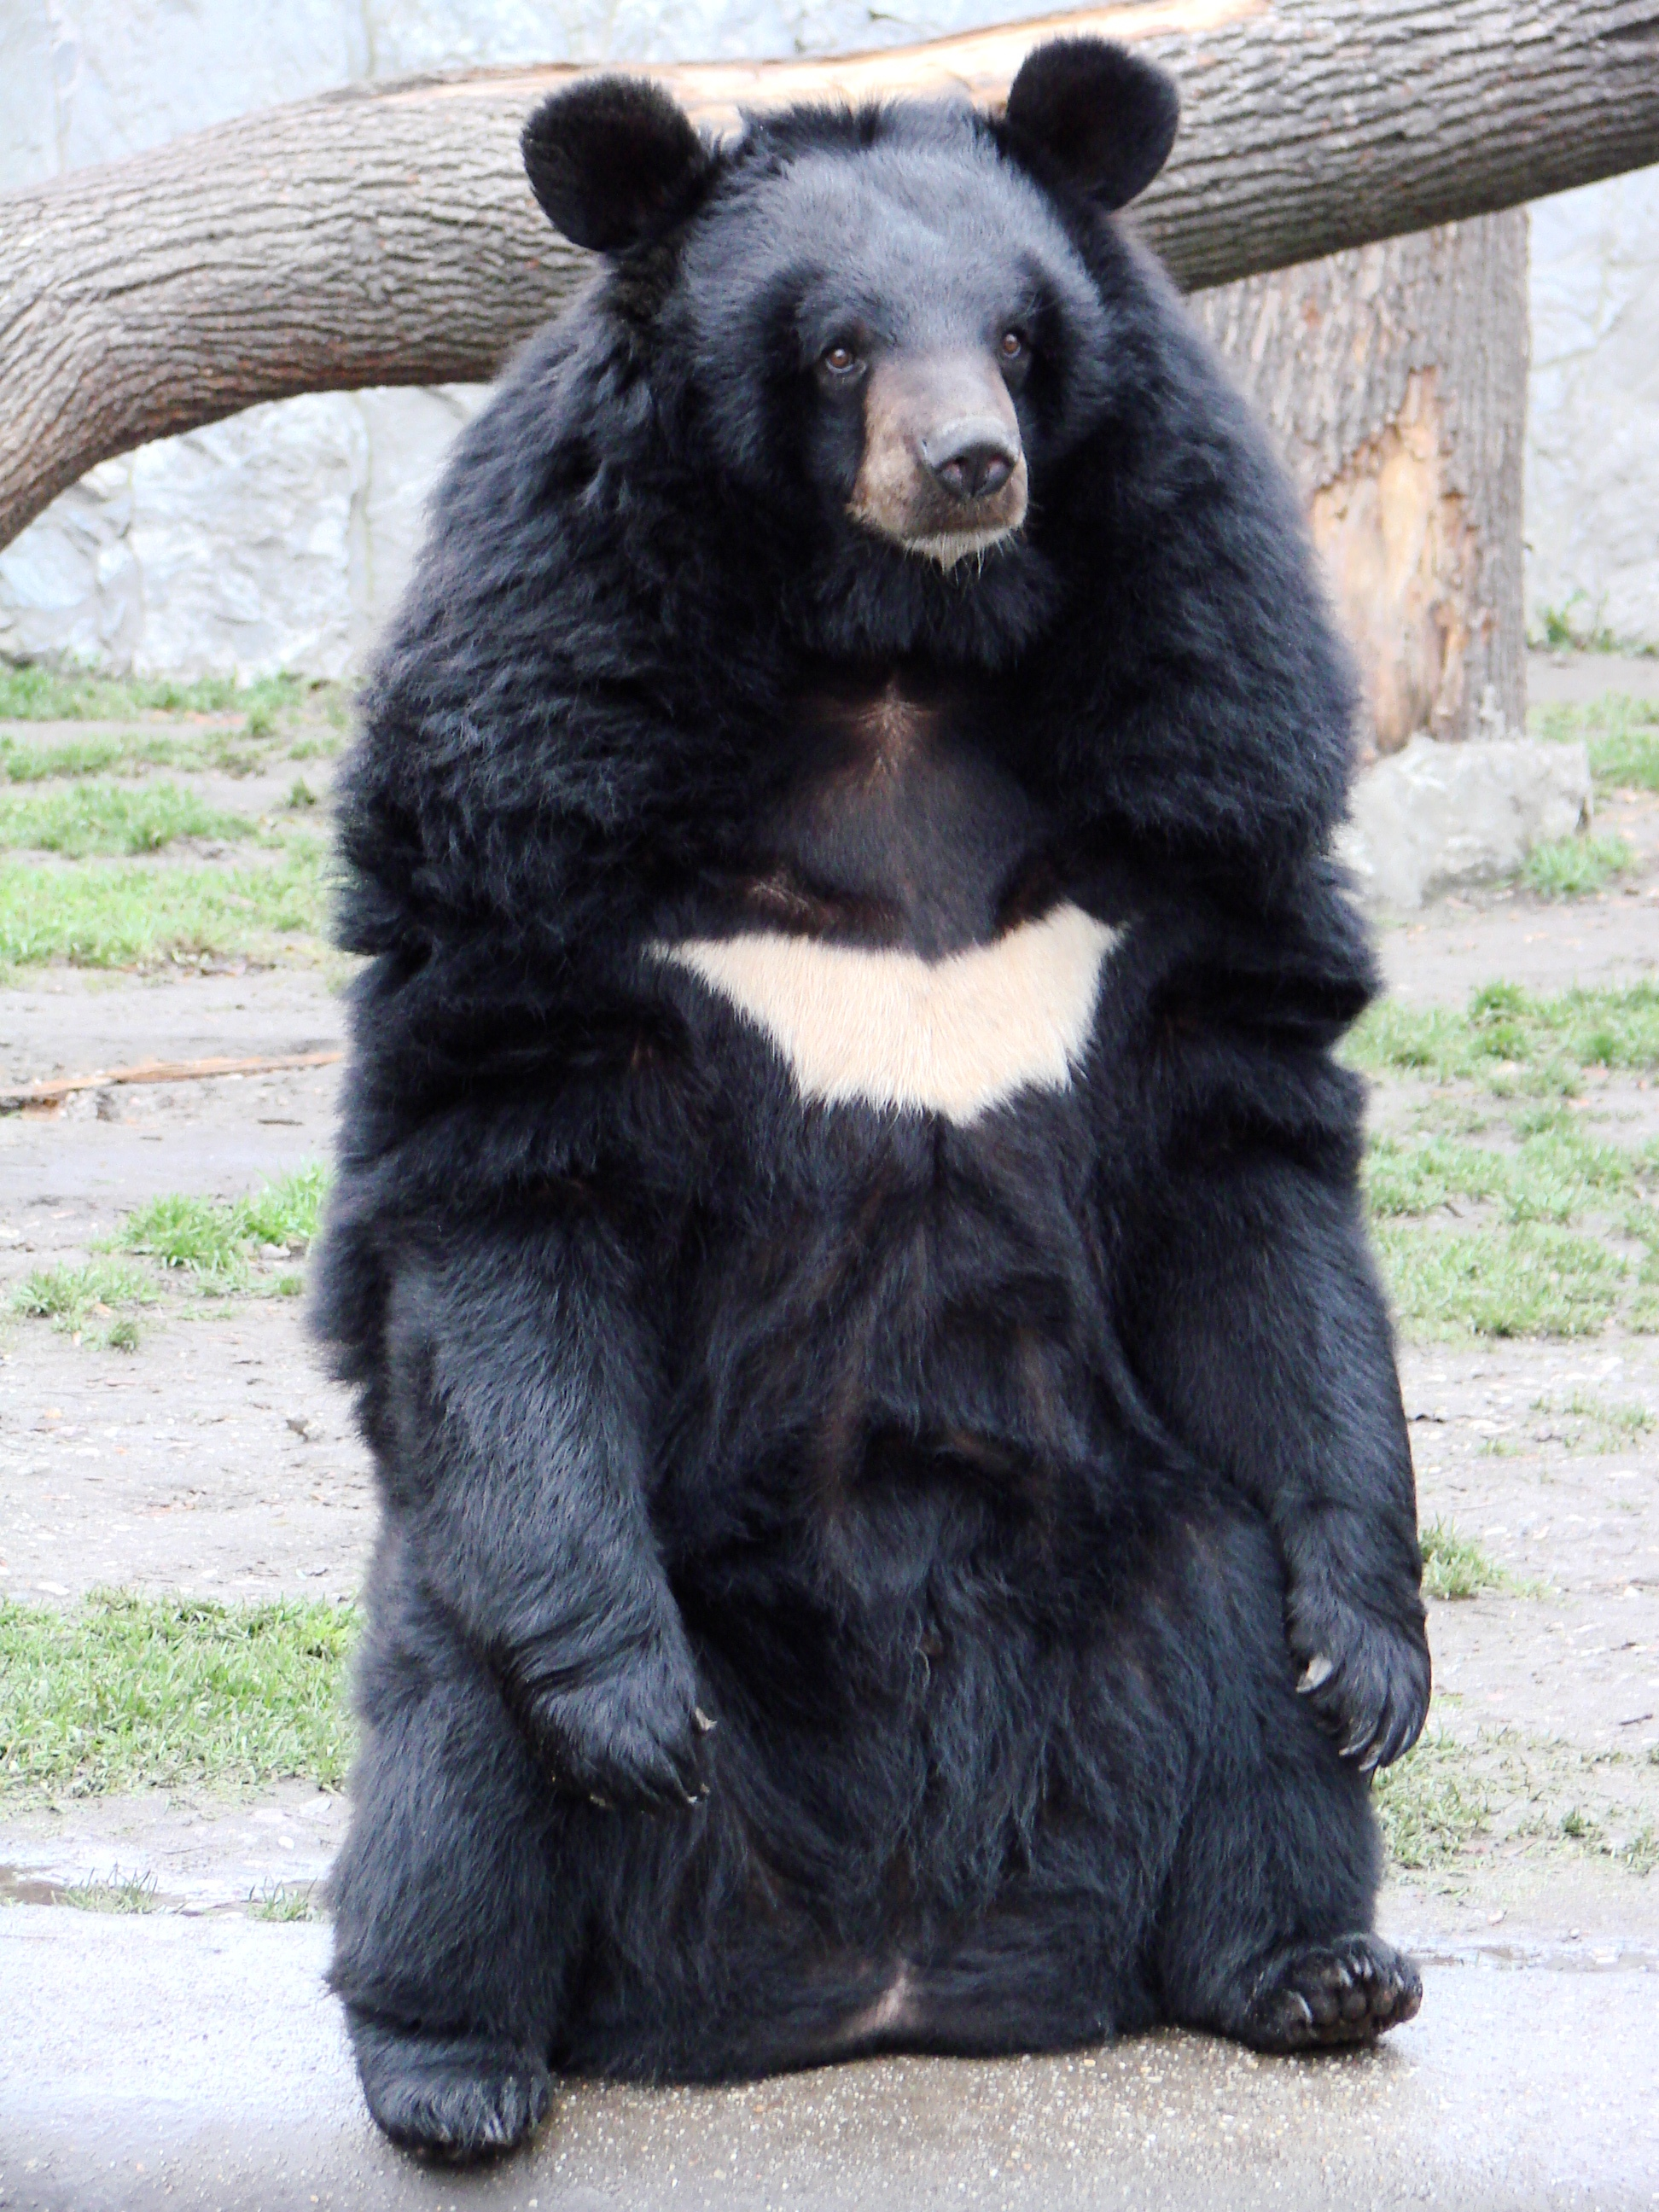 63 Year Old Fisherman Fights Off Bear With Karate Ursus thibetanus 3 Wroclaw zoo